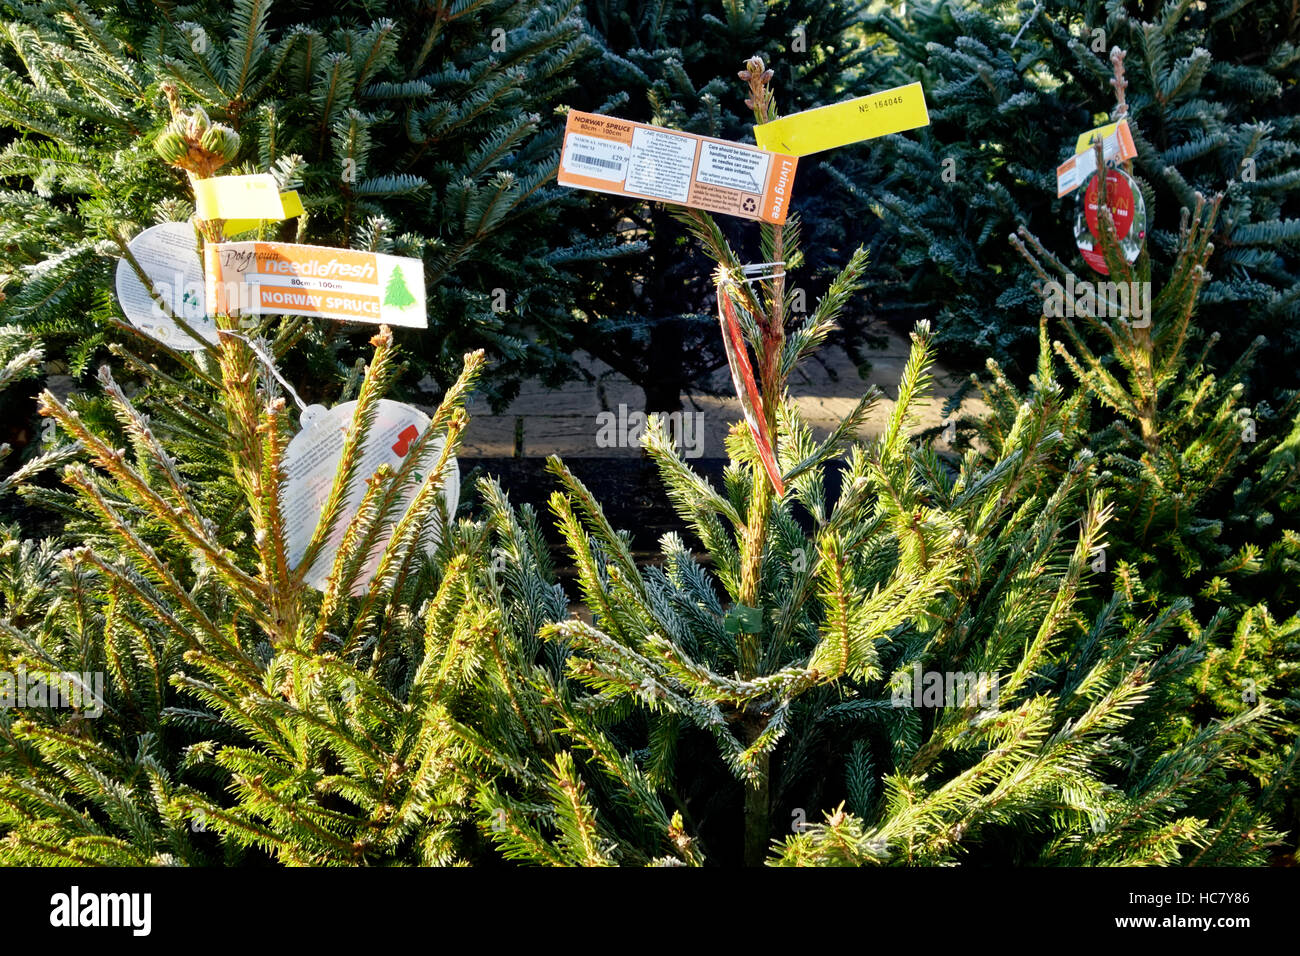 Norway Spruce Christmas Trees For Sale at Whitehall Garden Centre near Lacock in Wiltshire, United Kingdom. - Stock Image